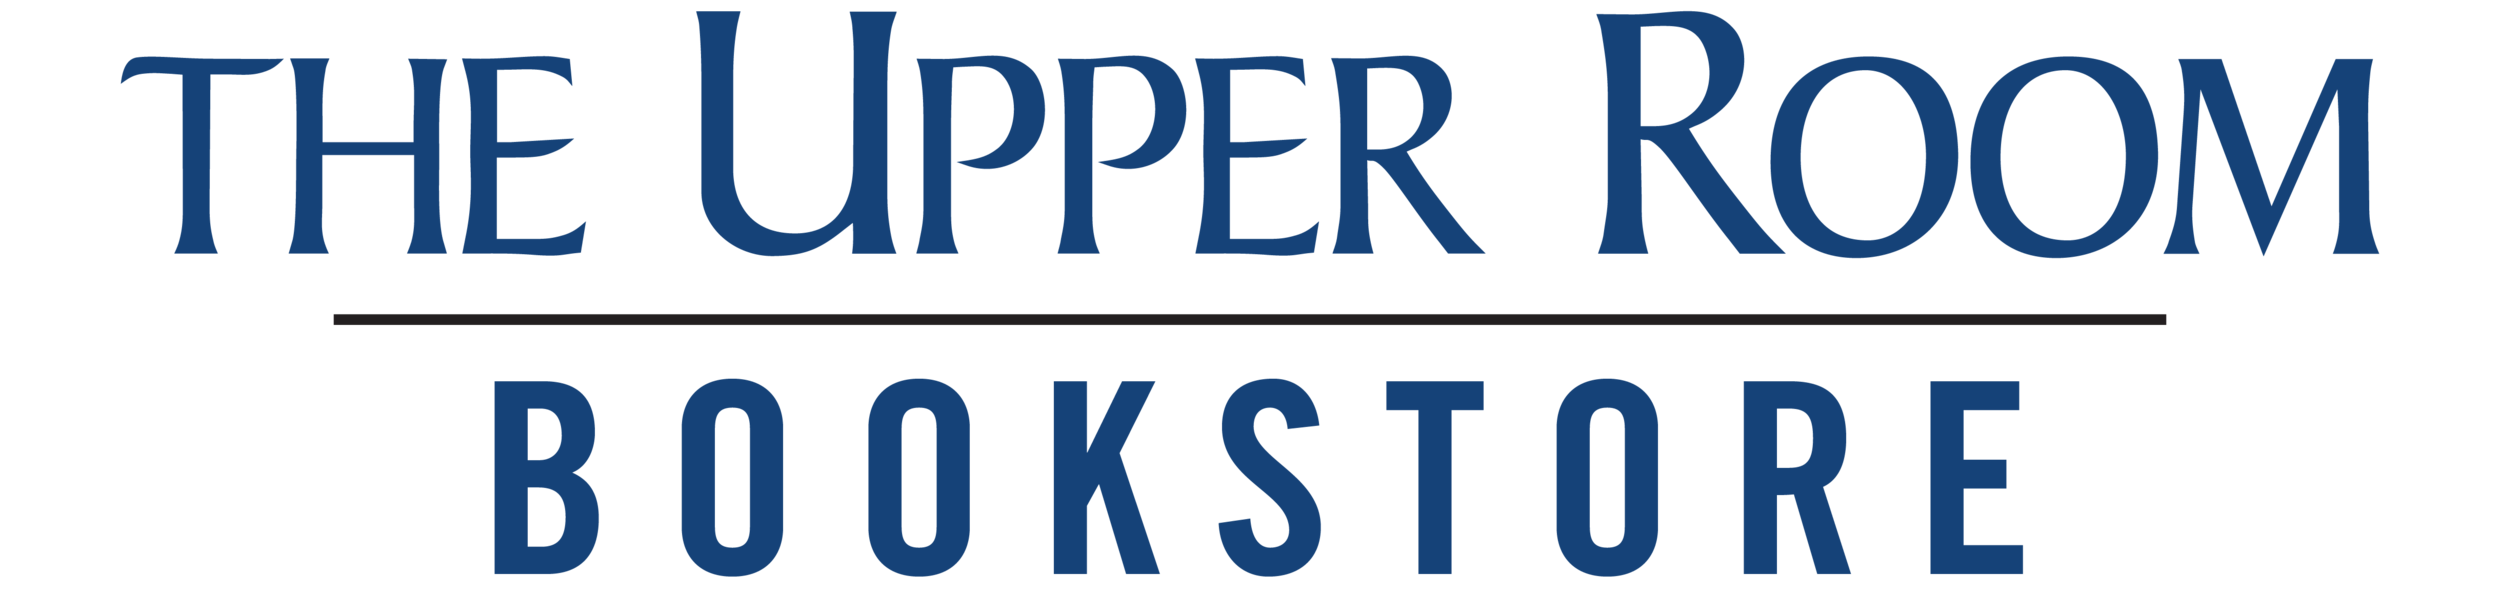 Upper Room Bookstore